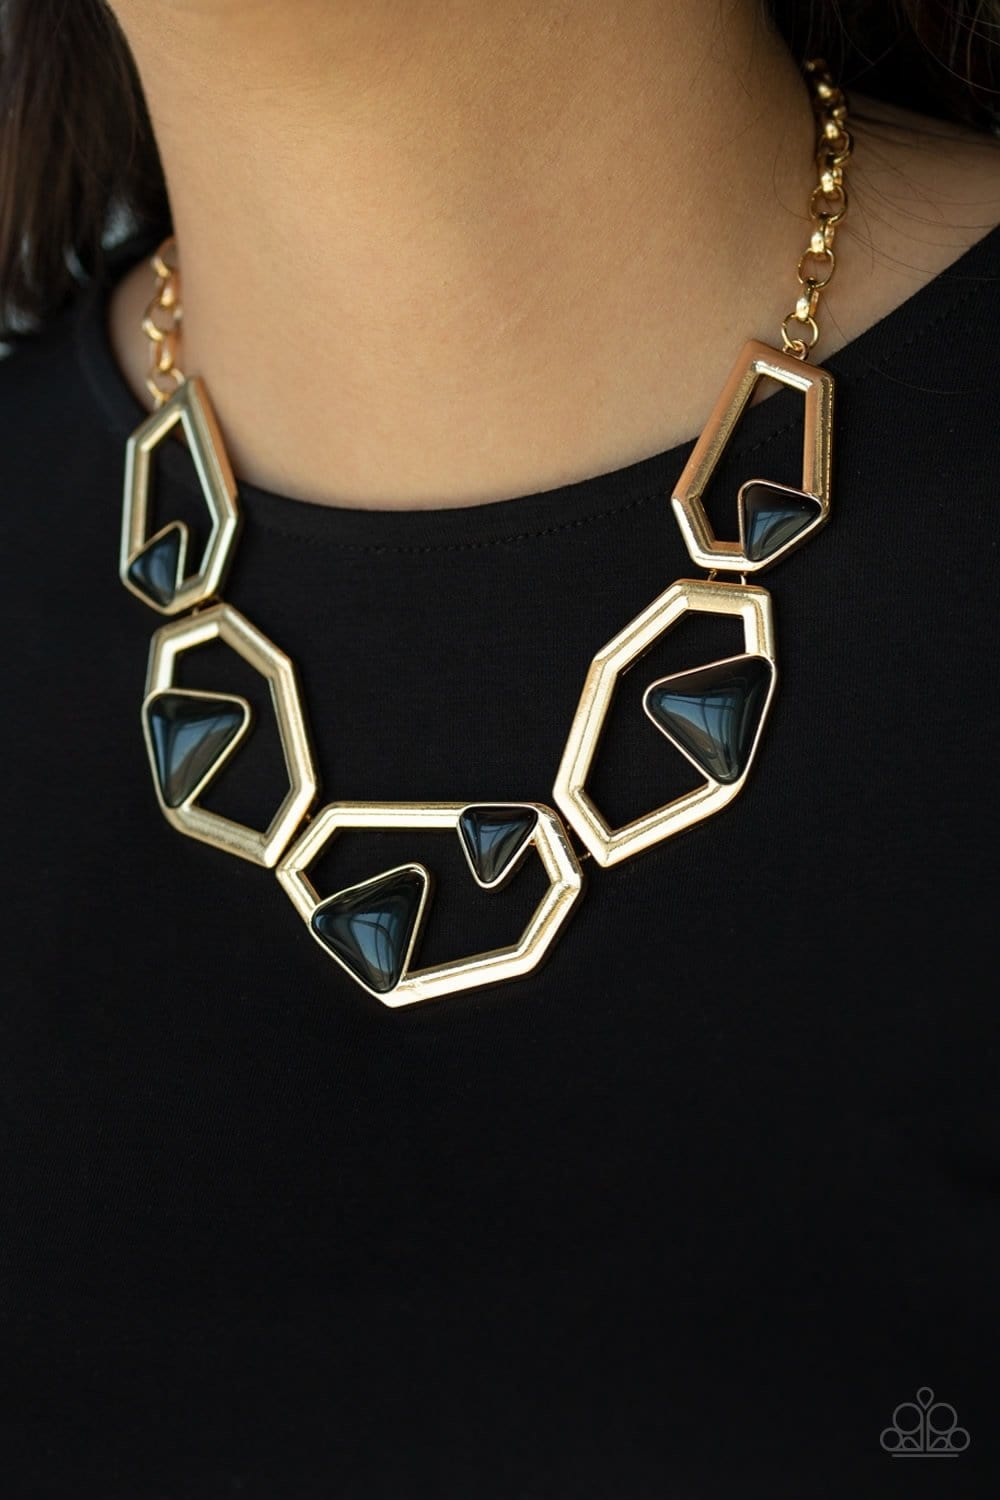 GEO-ing, GEO-ing, Gone - Gold: Paparazzi Accessories - Jewels N' Thingz Boutique